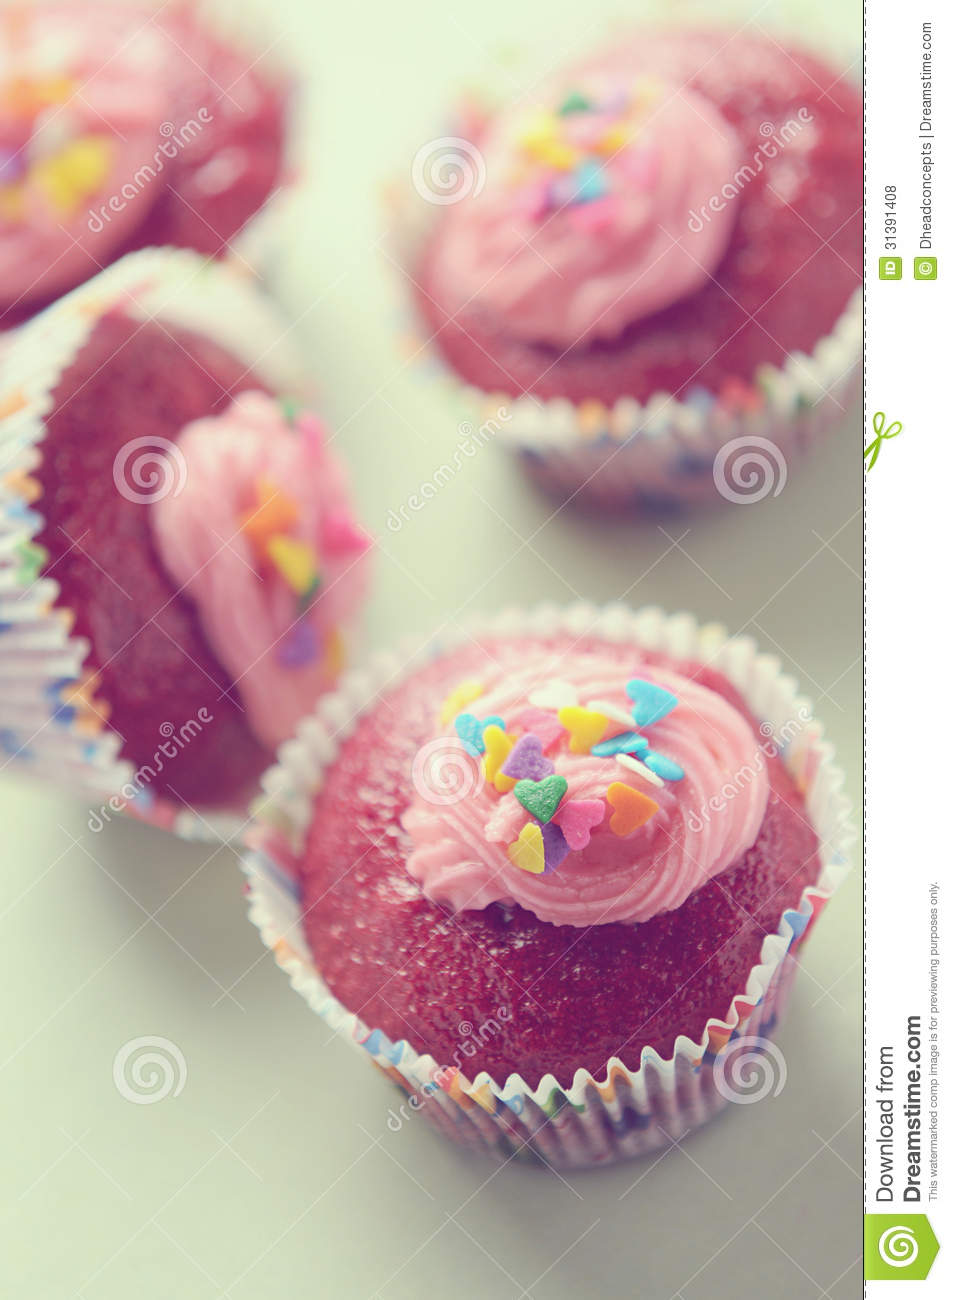 Red Velvet Cupcake Royalty Free Stock Photos - Image: 31391408